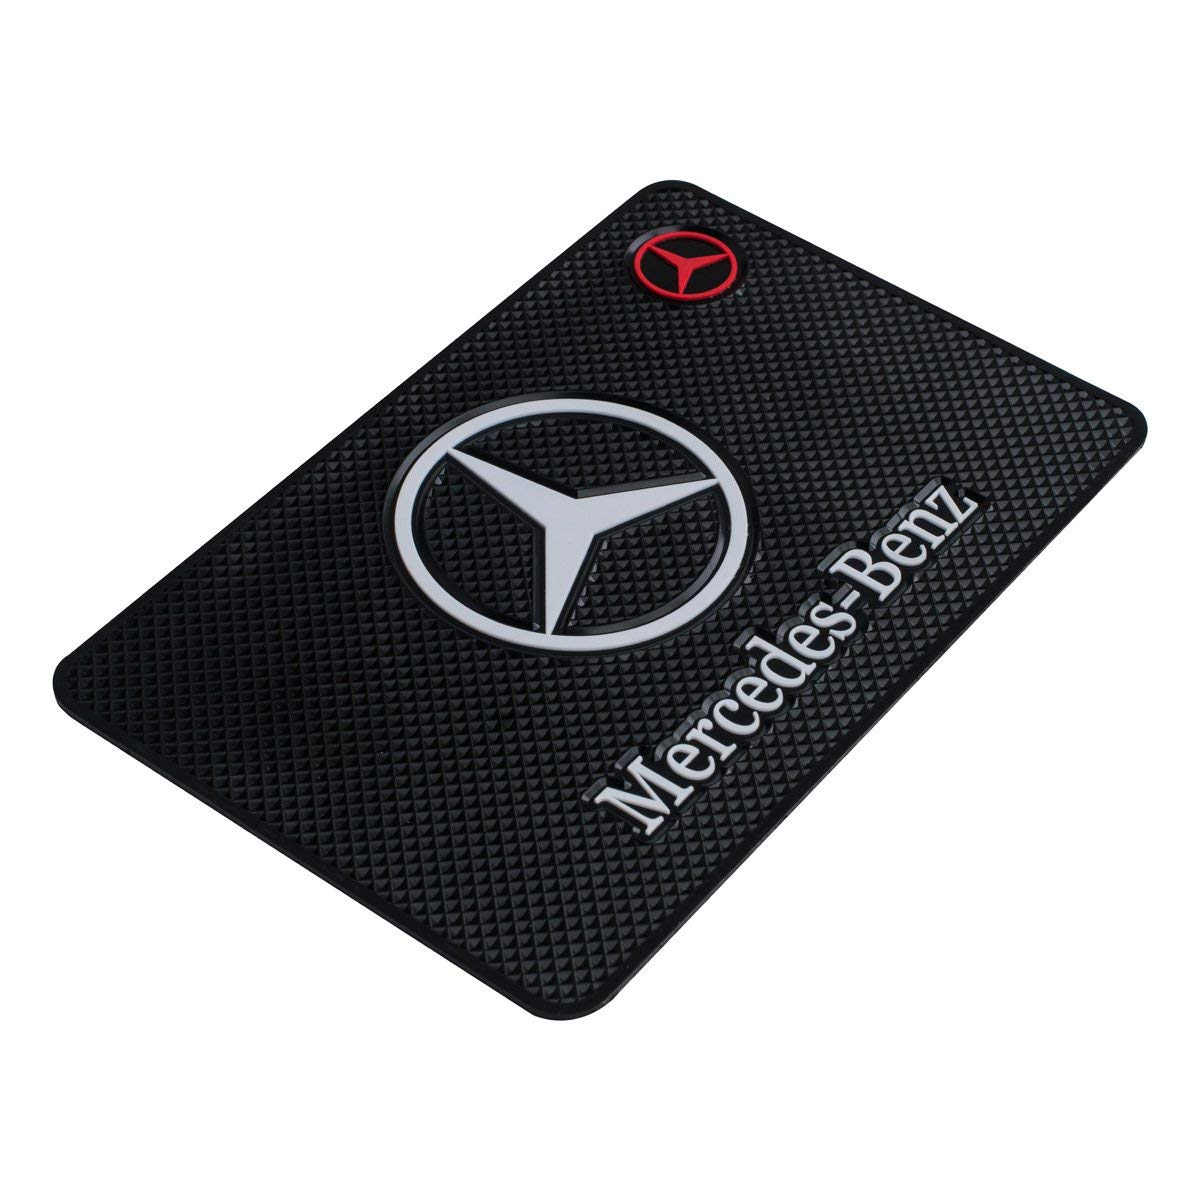 Car Dashboard Non-Slip Mat Auto High Temperature Resistance Medium 7.5Inch Leather Surface Anti-Slip Car Dashboard Pad for Phone,CD,Electronic Devices,Keyboard,Other Smooth Items Fit BMW